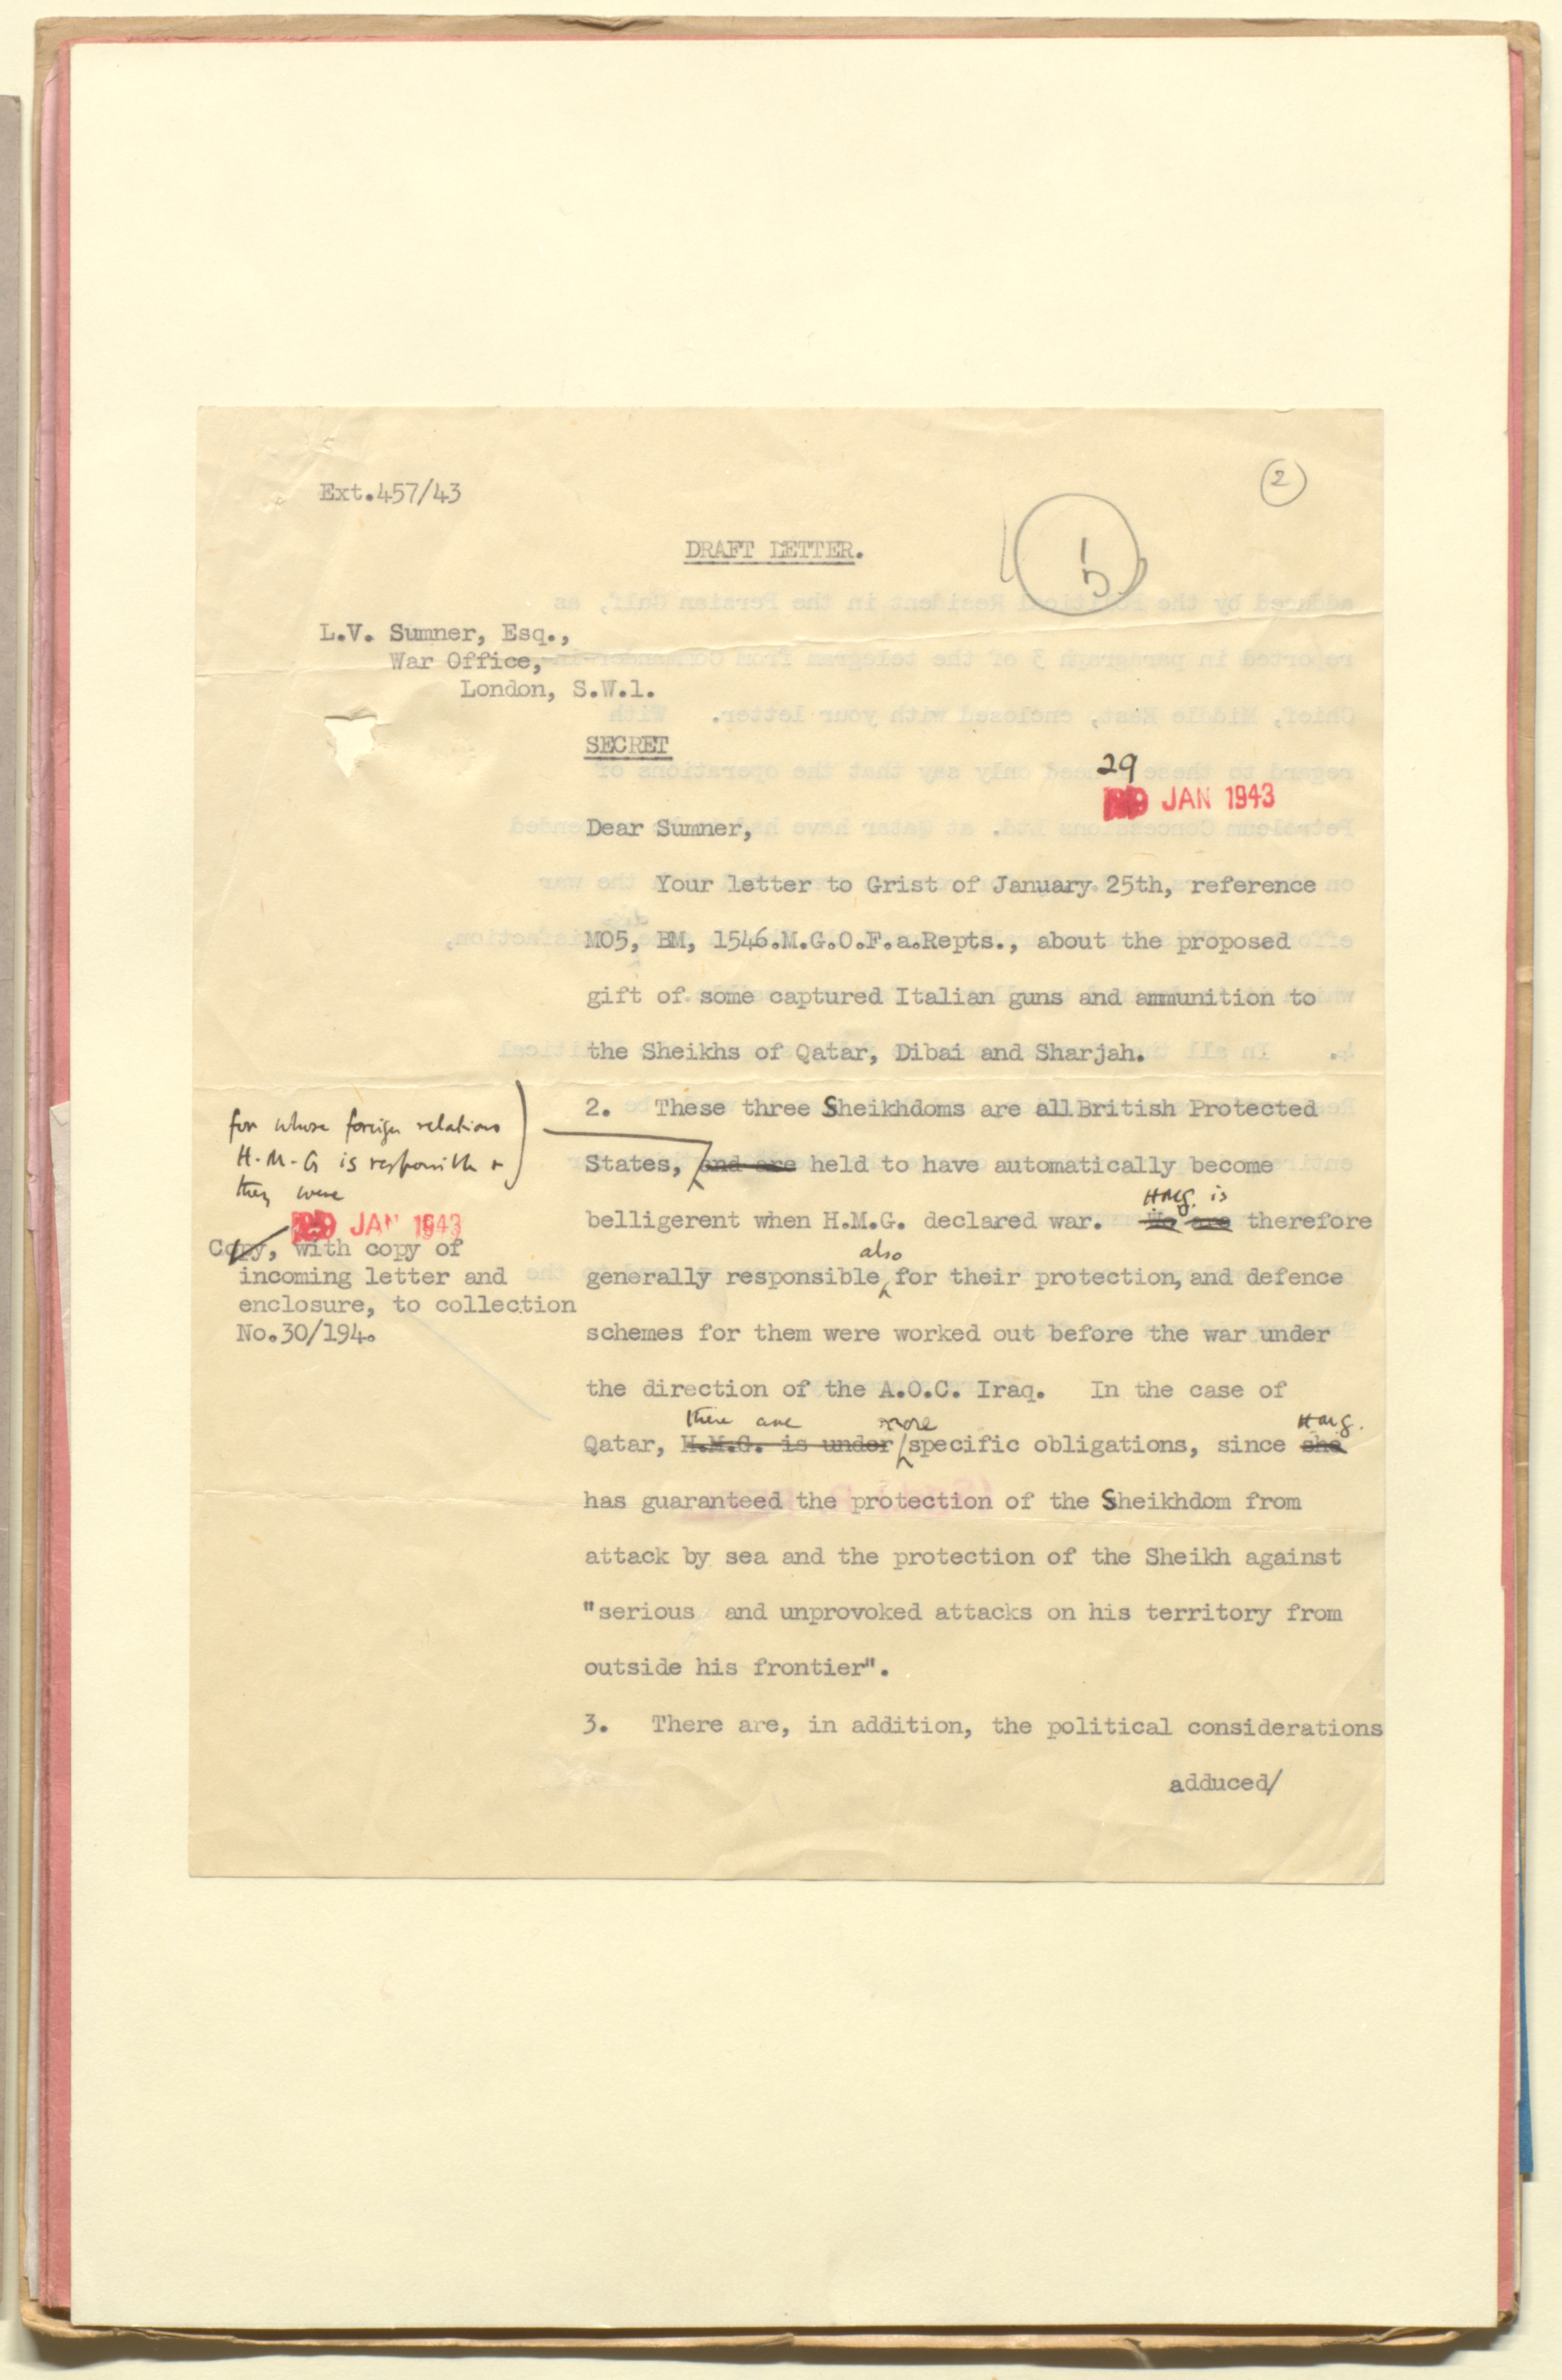 1st page of text from the 1916 Treaty of Qatar, from the file 'Qatar Affairs' (1941-49) (IOR/L/PS/12/3963)